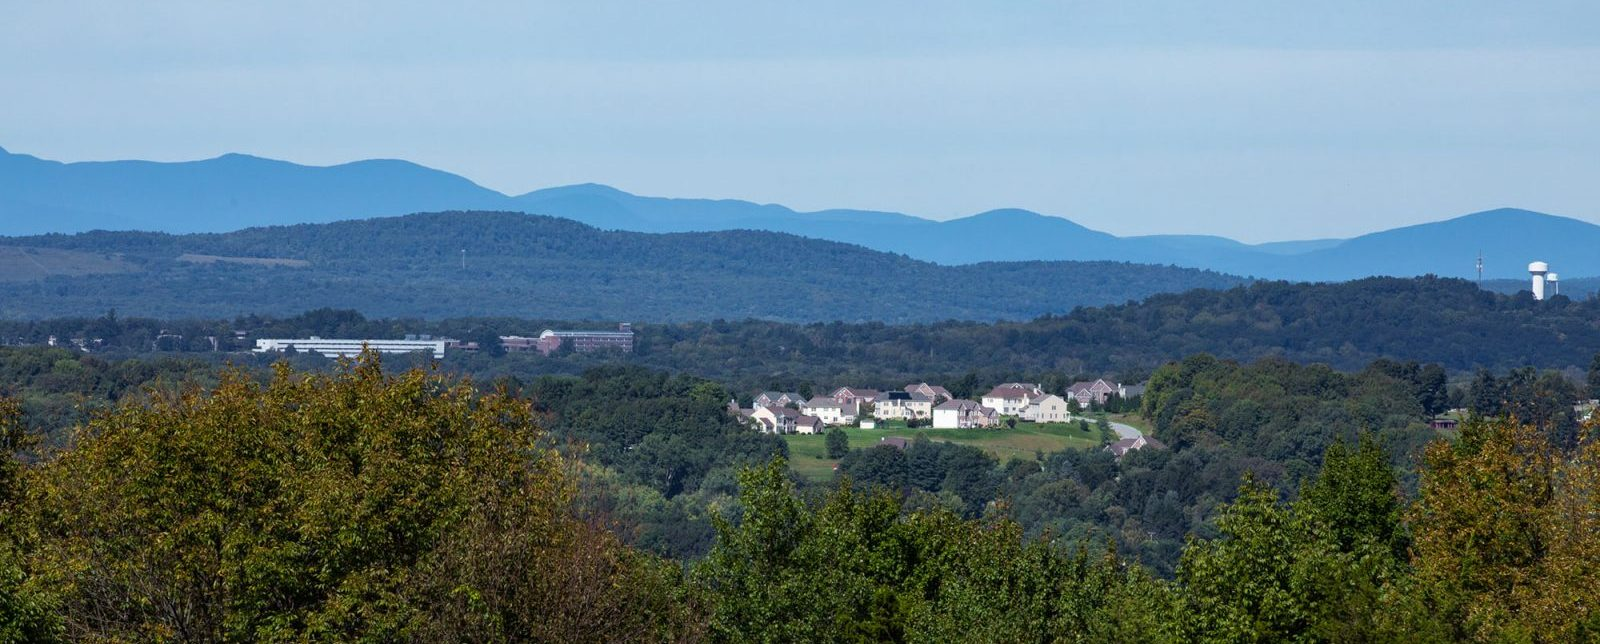 Panoramic view with mountains of Sleight Farm new construction home community in Dutchess County, Hudson Valley, Upstate NY